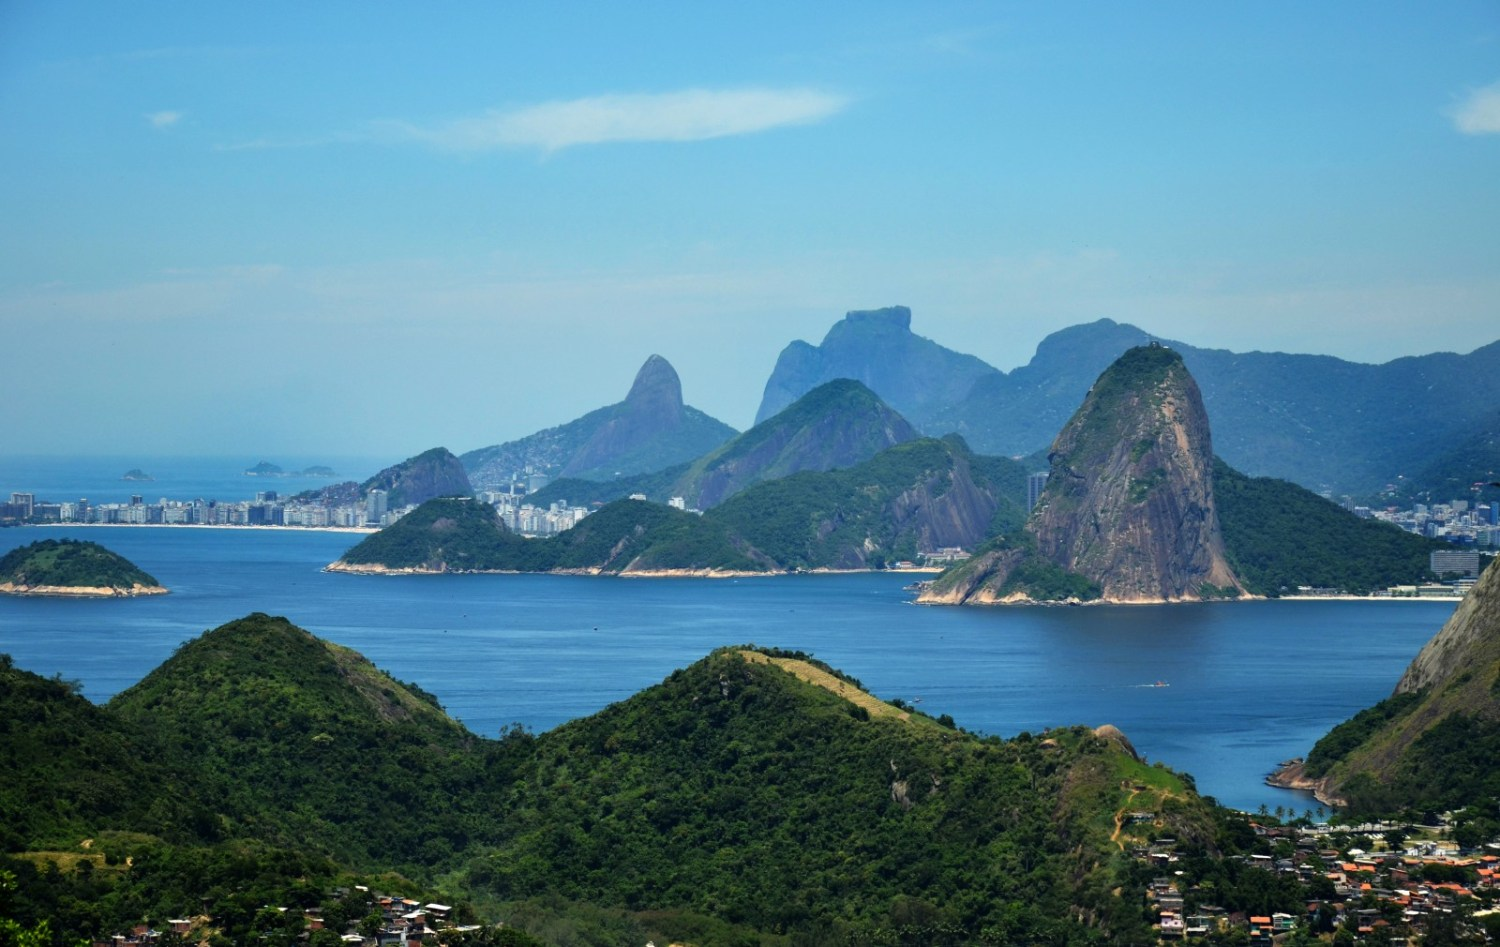 Athletes competing in the open water events at the Olympics expressed frustration about the the fixation on water quality in Guanabara Bay. Photo courtesy Rodrigo Soldon via Flickr Creative Commons